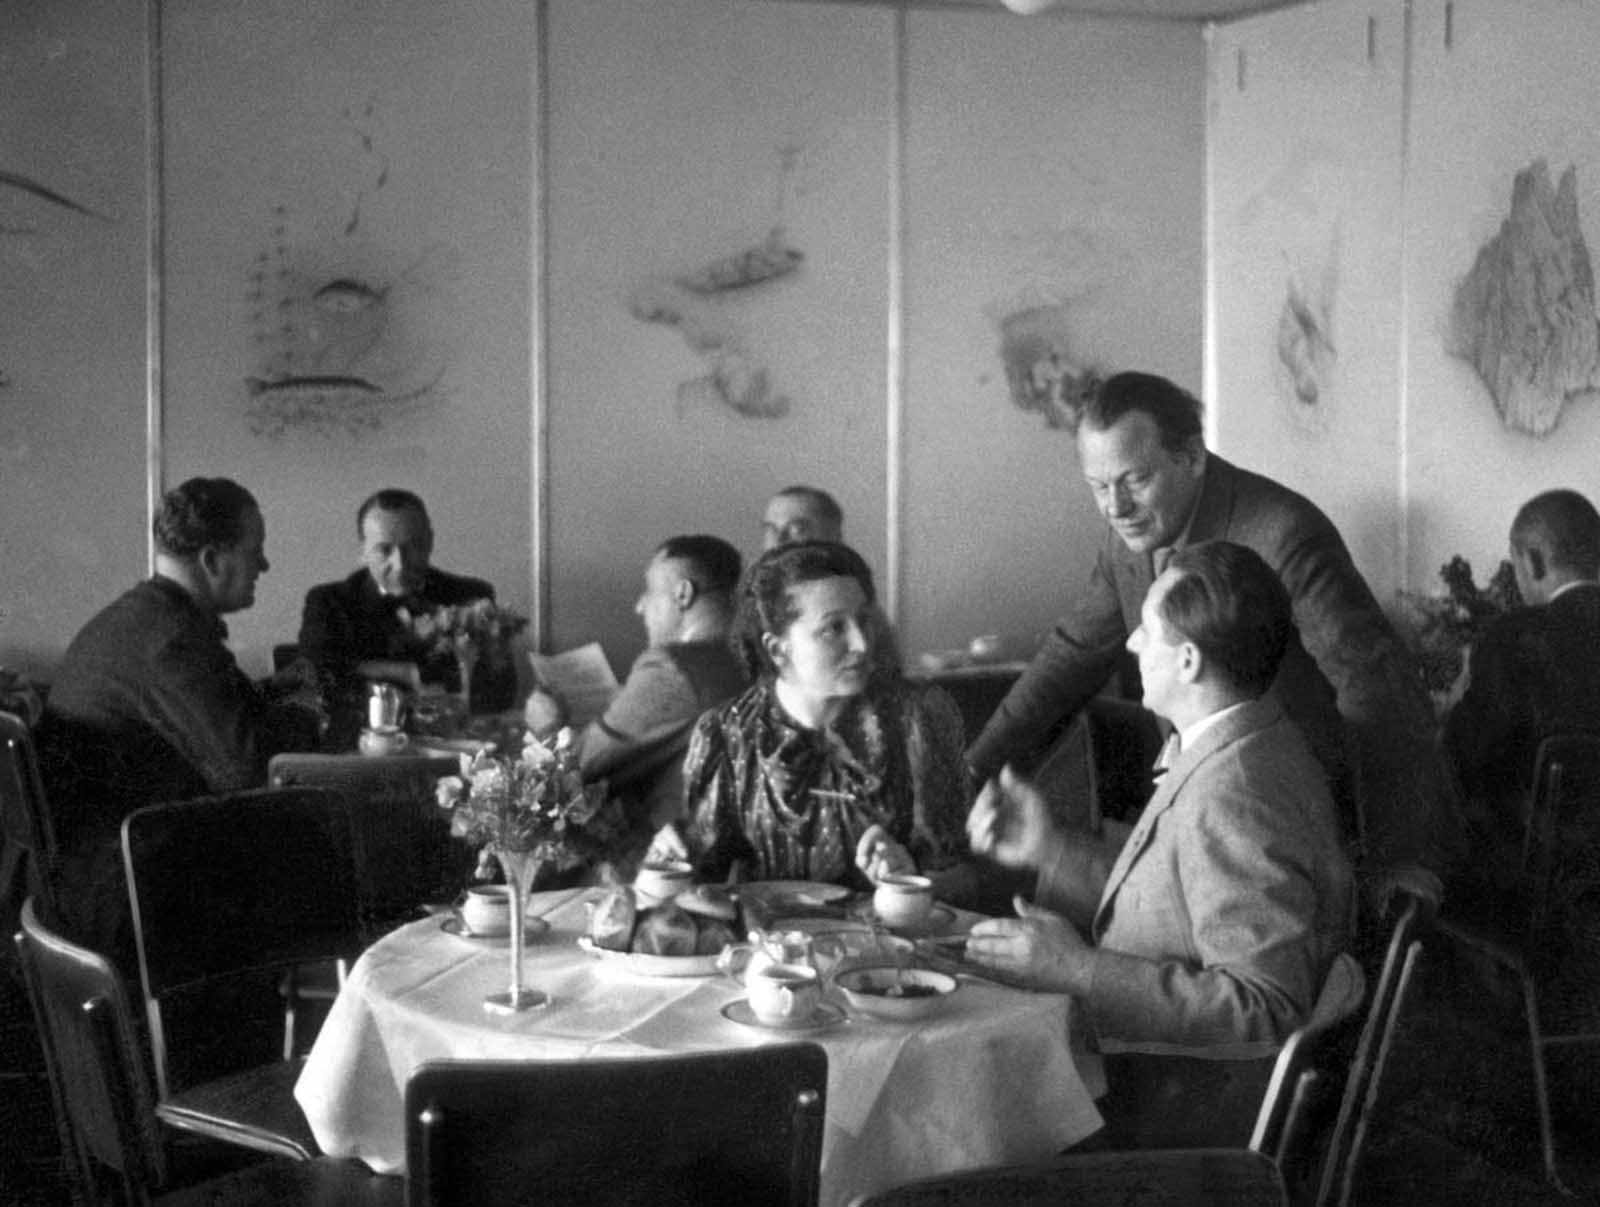 Passengers in the dining room of the Hindenburg, in April of 1936.